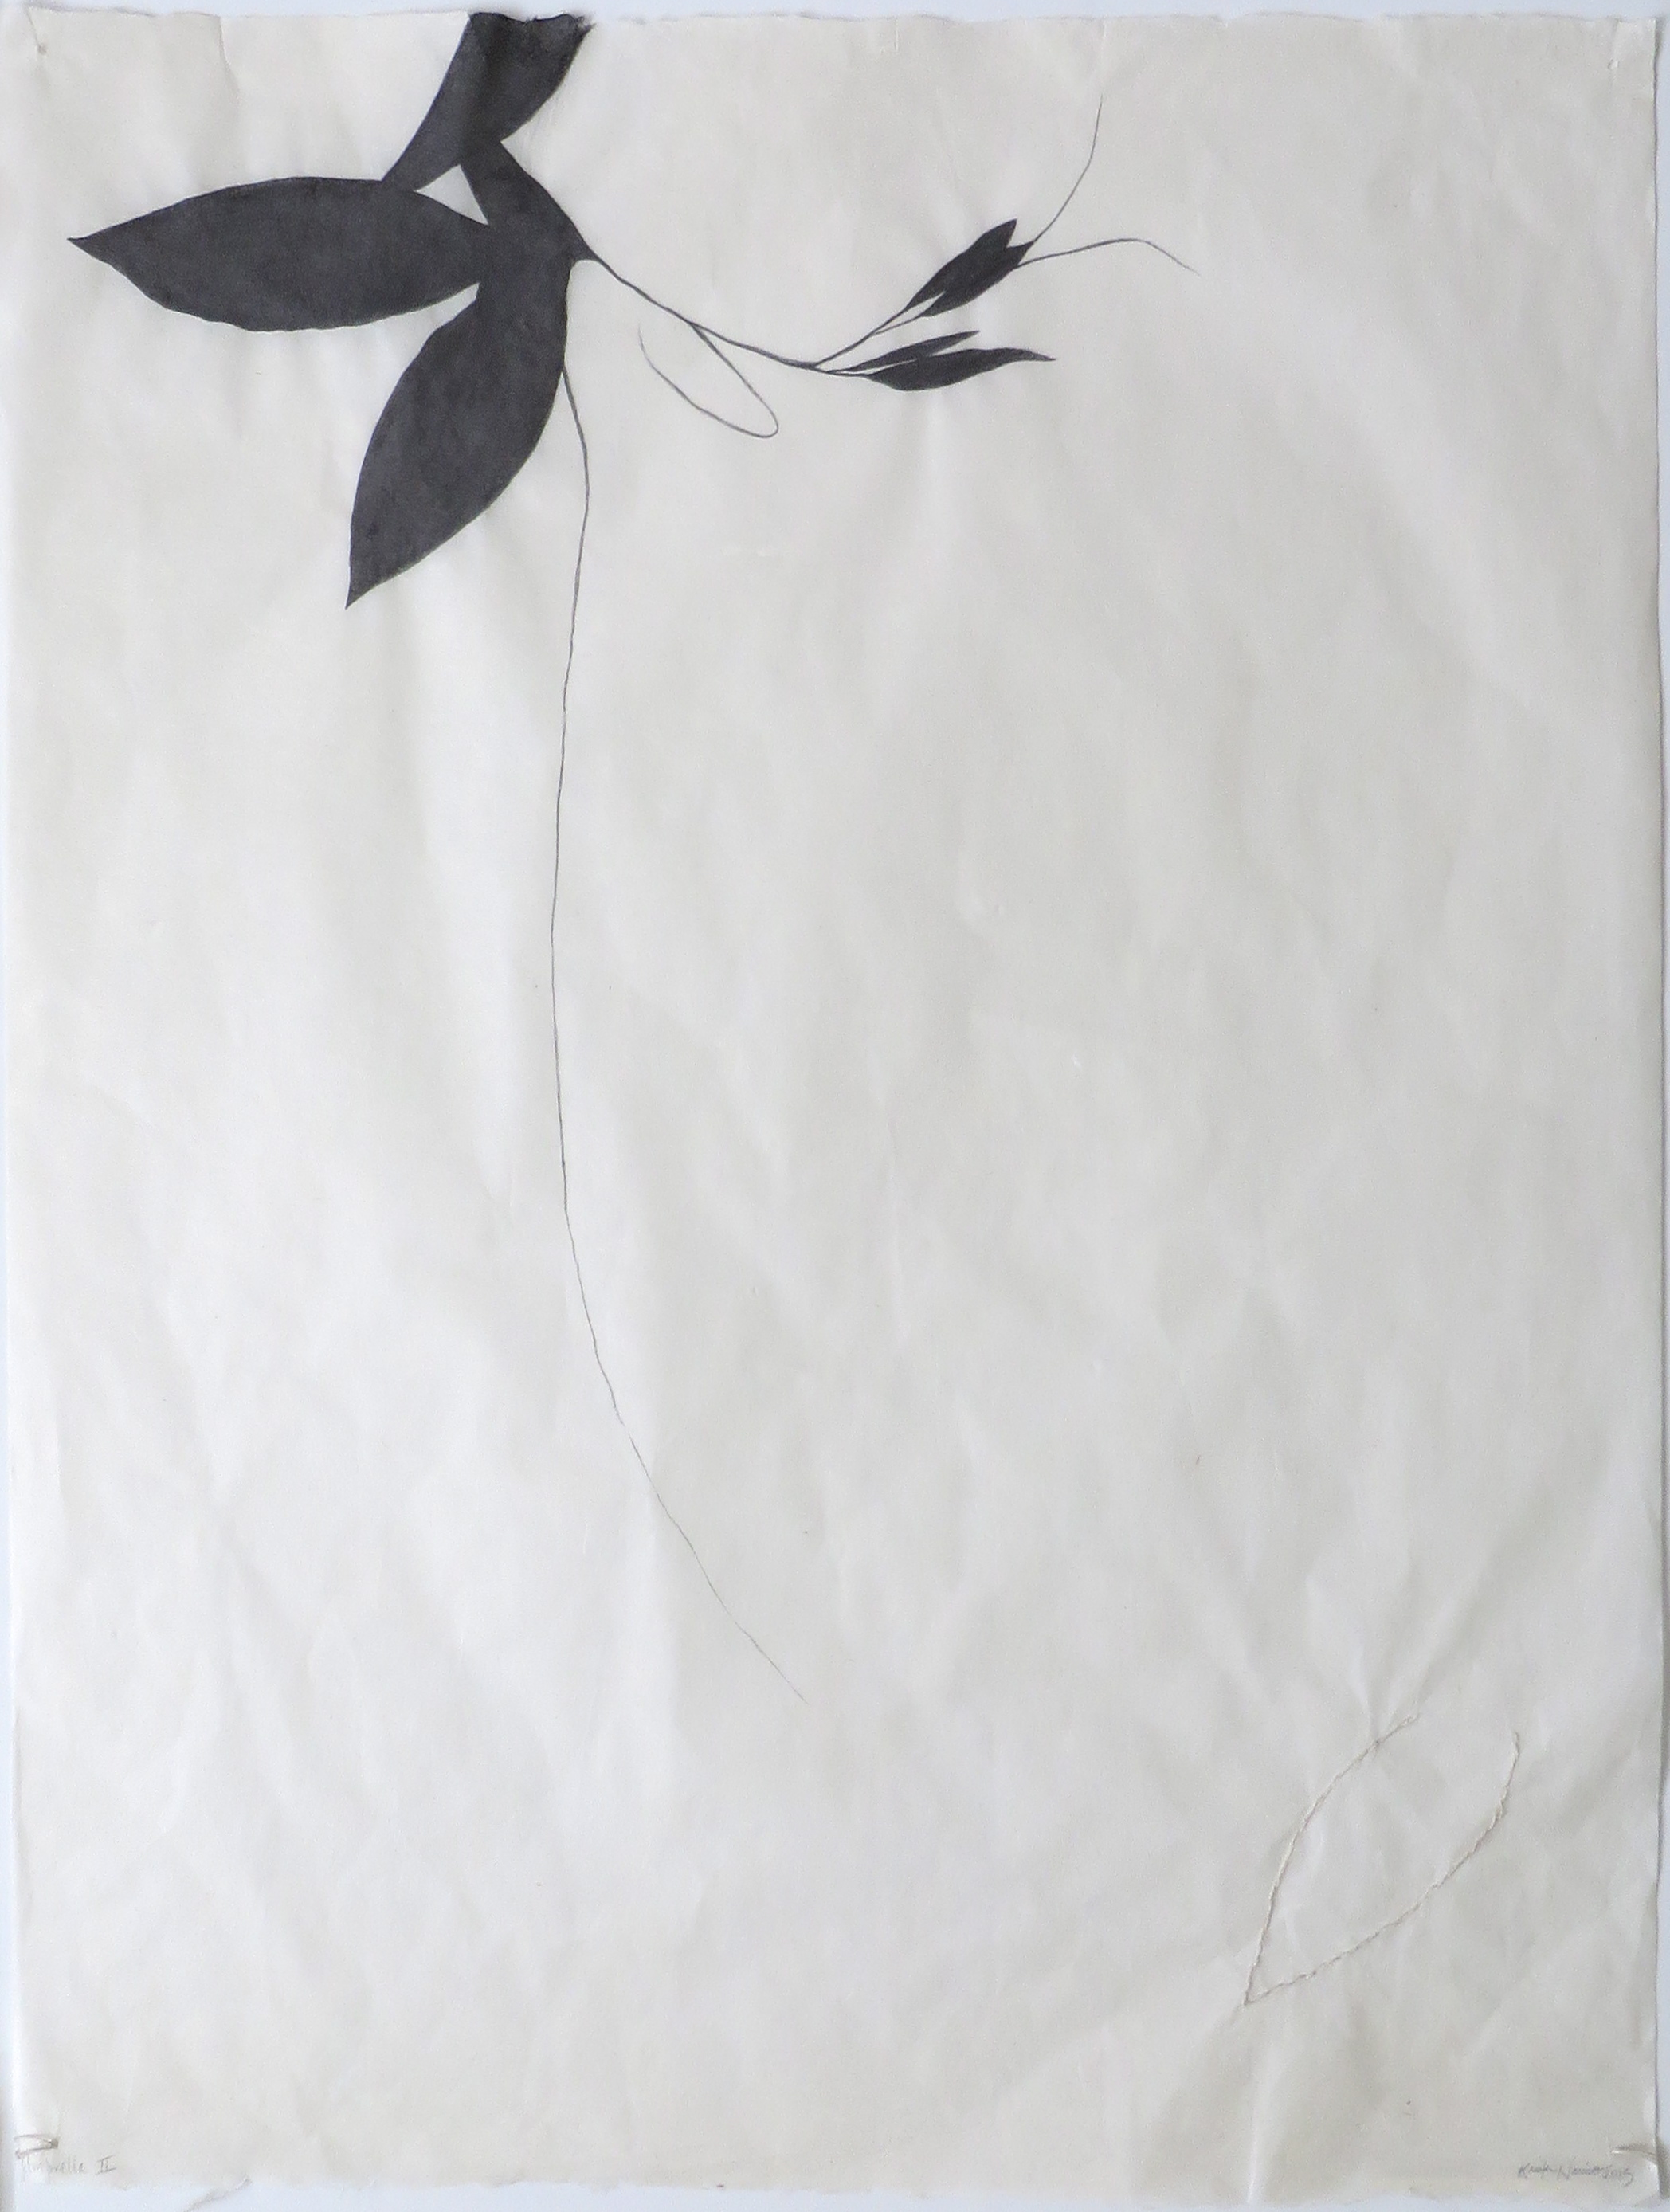 Umbrella II  Graphite and embroidery on Sekishu, 25 x 19 inches, 2015.